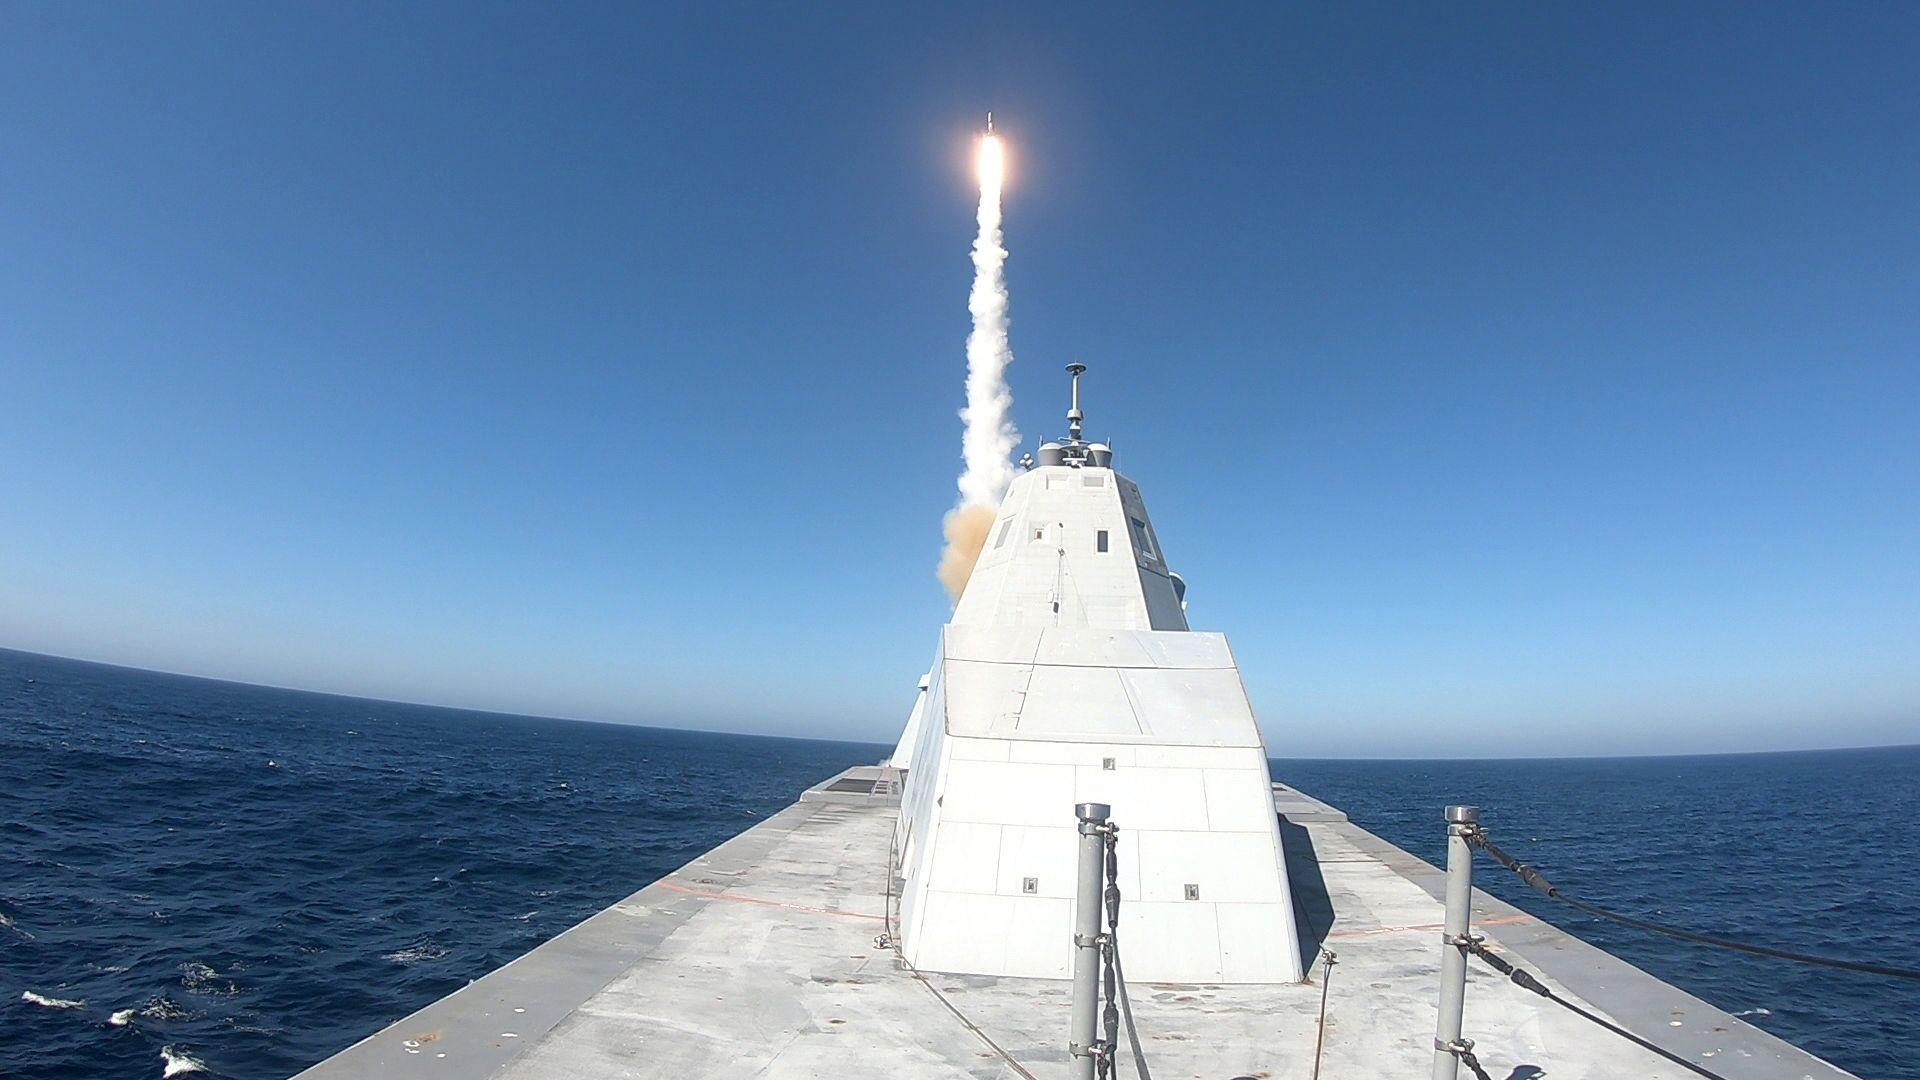 USS Zumwalt (DDG 1000) successfully executed the first live fire test of the MK 57 Vertical Launching System with a Standard Missile (SM-2) on the Naval Air Weapons Center Weapons Division Sea Test Range, Point Mugu, Oct. 13. - Sputnik Italia, 1920, 26.08.2021